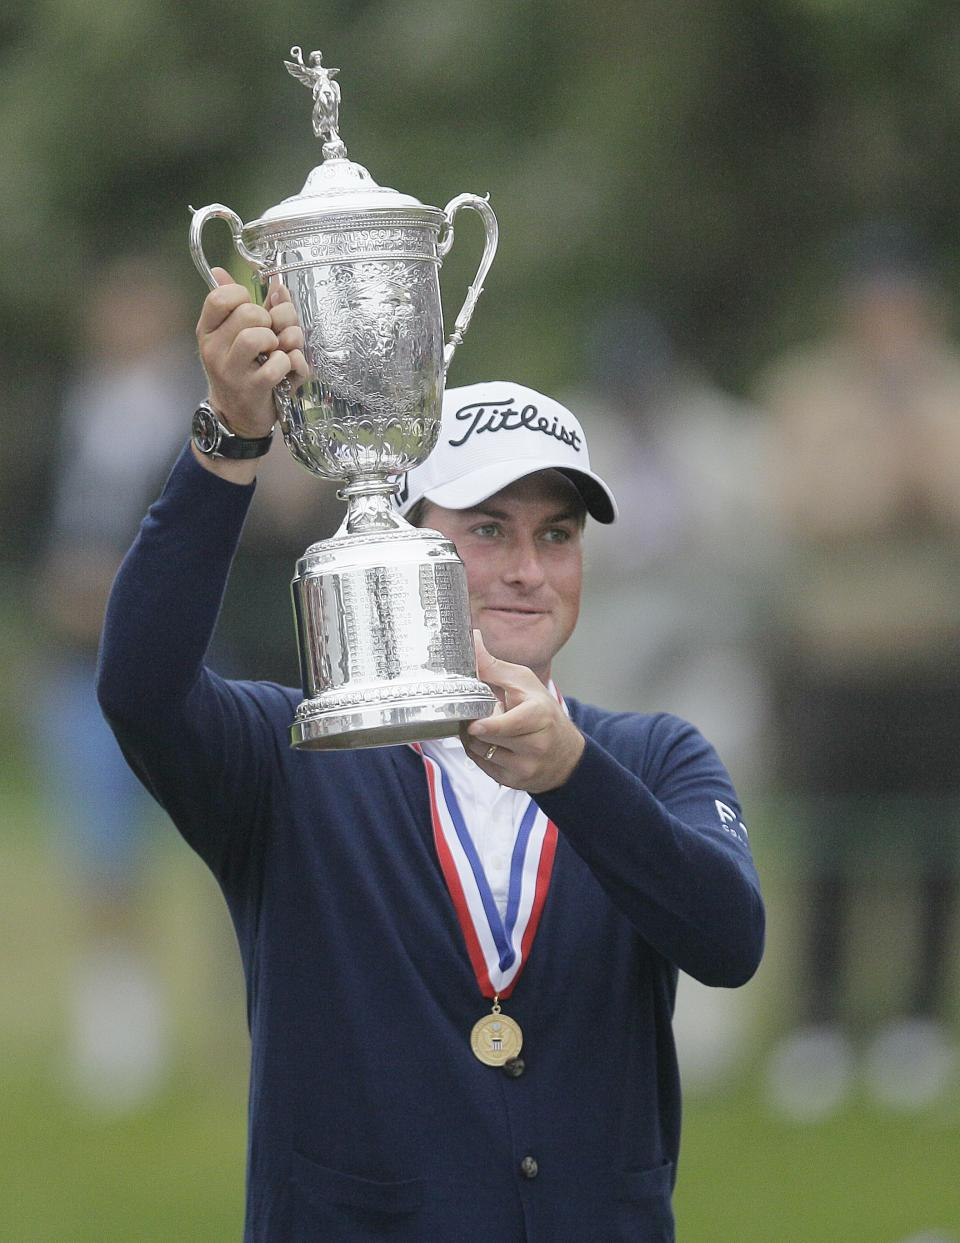 Webb Simpson holds up the championship trophy after the U.S. Open Championship golf tournament Sunday, June 17, 2012, at The Olympic Club in San Francisco. (AP Photo/Eric Risberg)